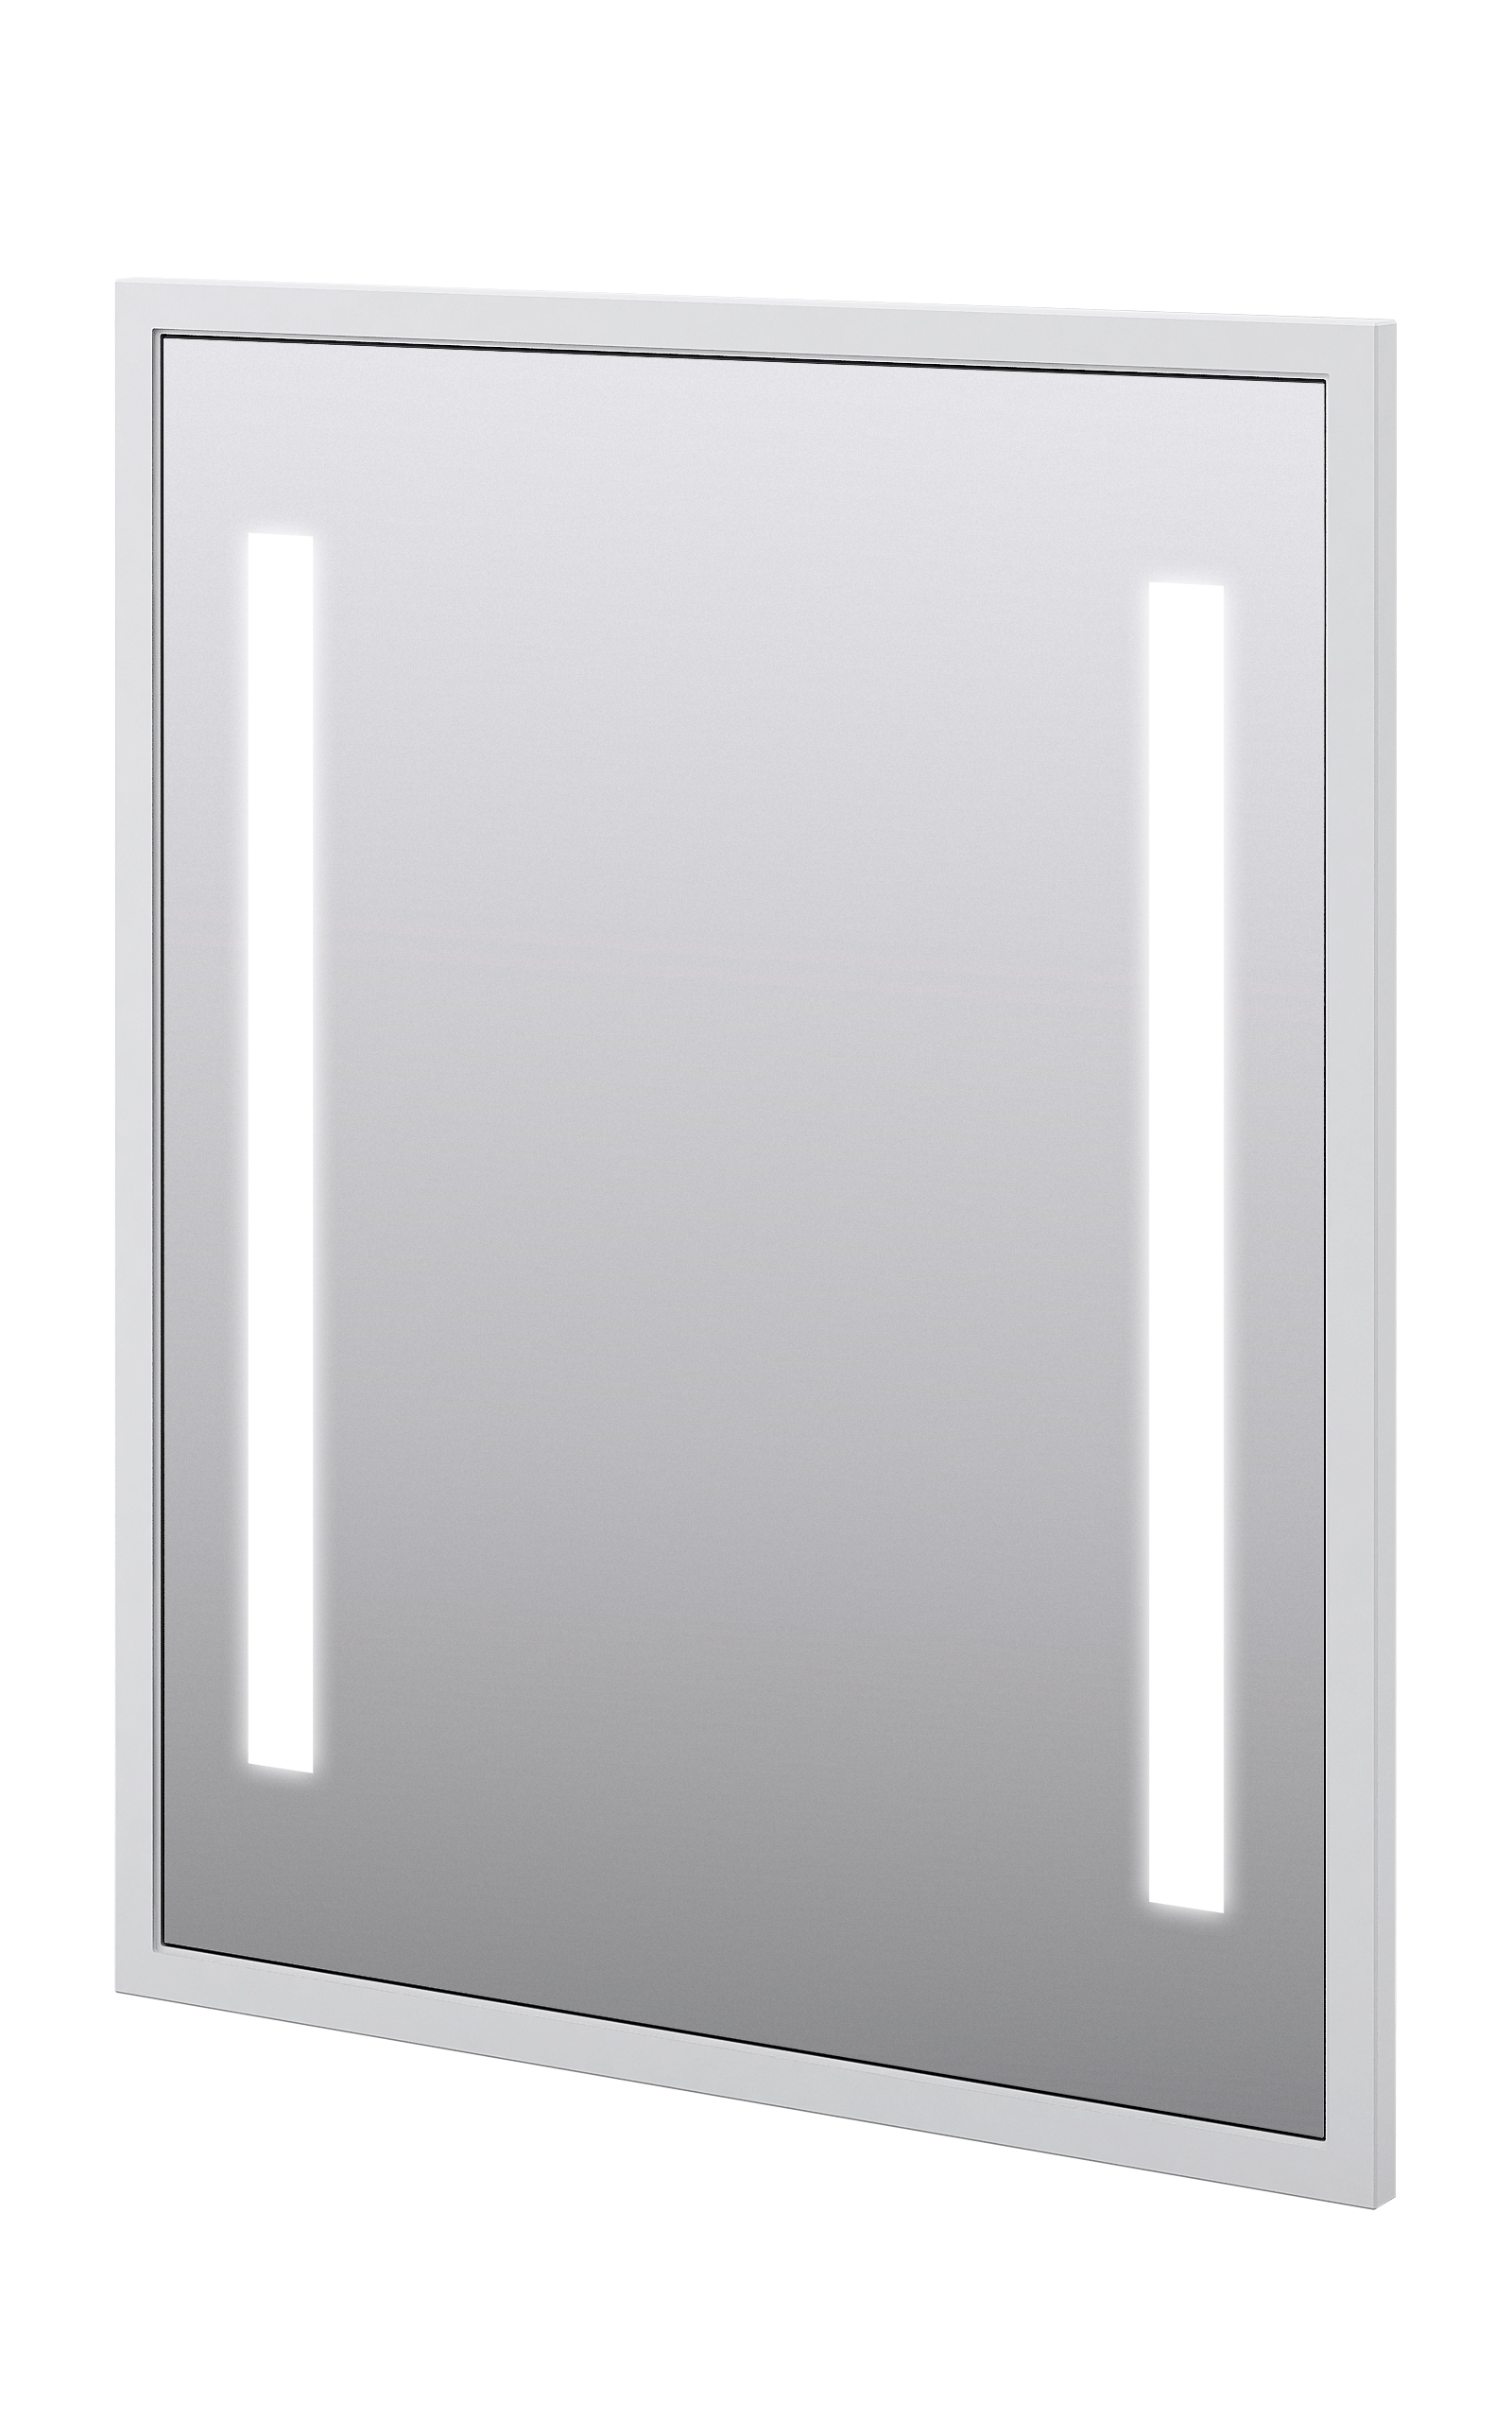 "Baden Haus 45016 28.7""W x 35.4""H Mirror LED Matt White"